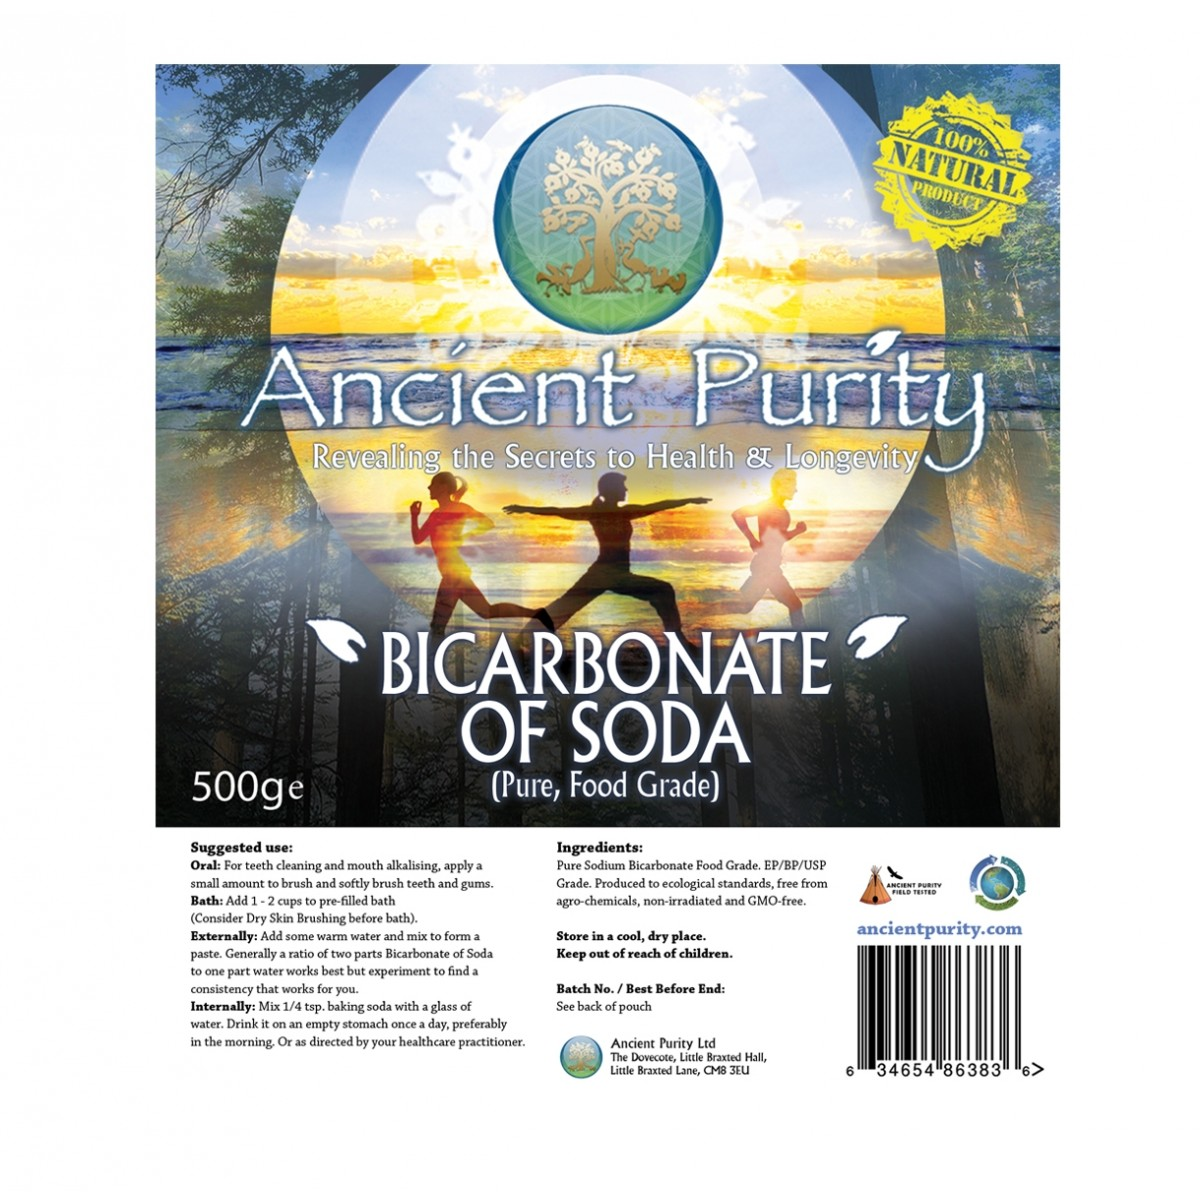 Bicarbonate of Soda - 500g (Pure Food-Grade) | Ancient Purity